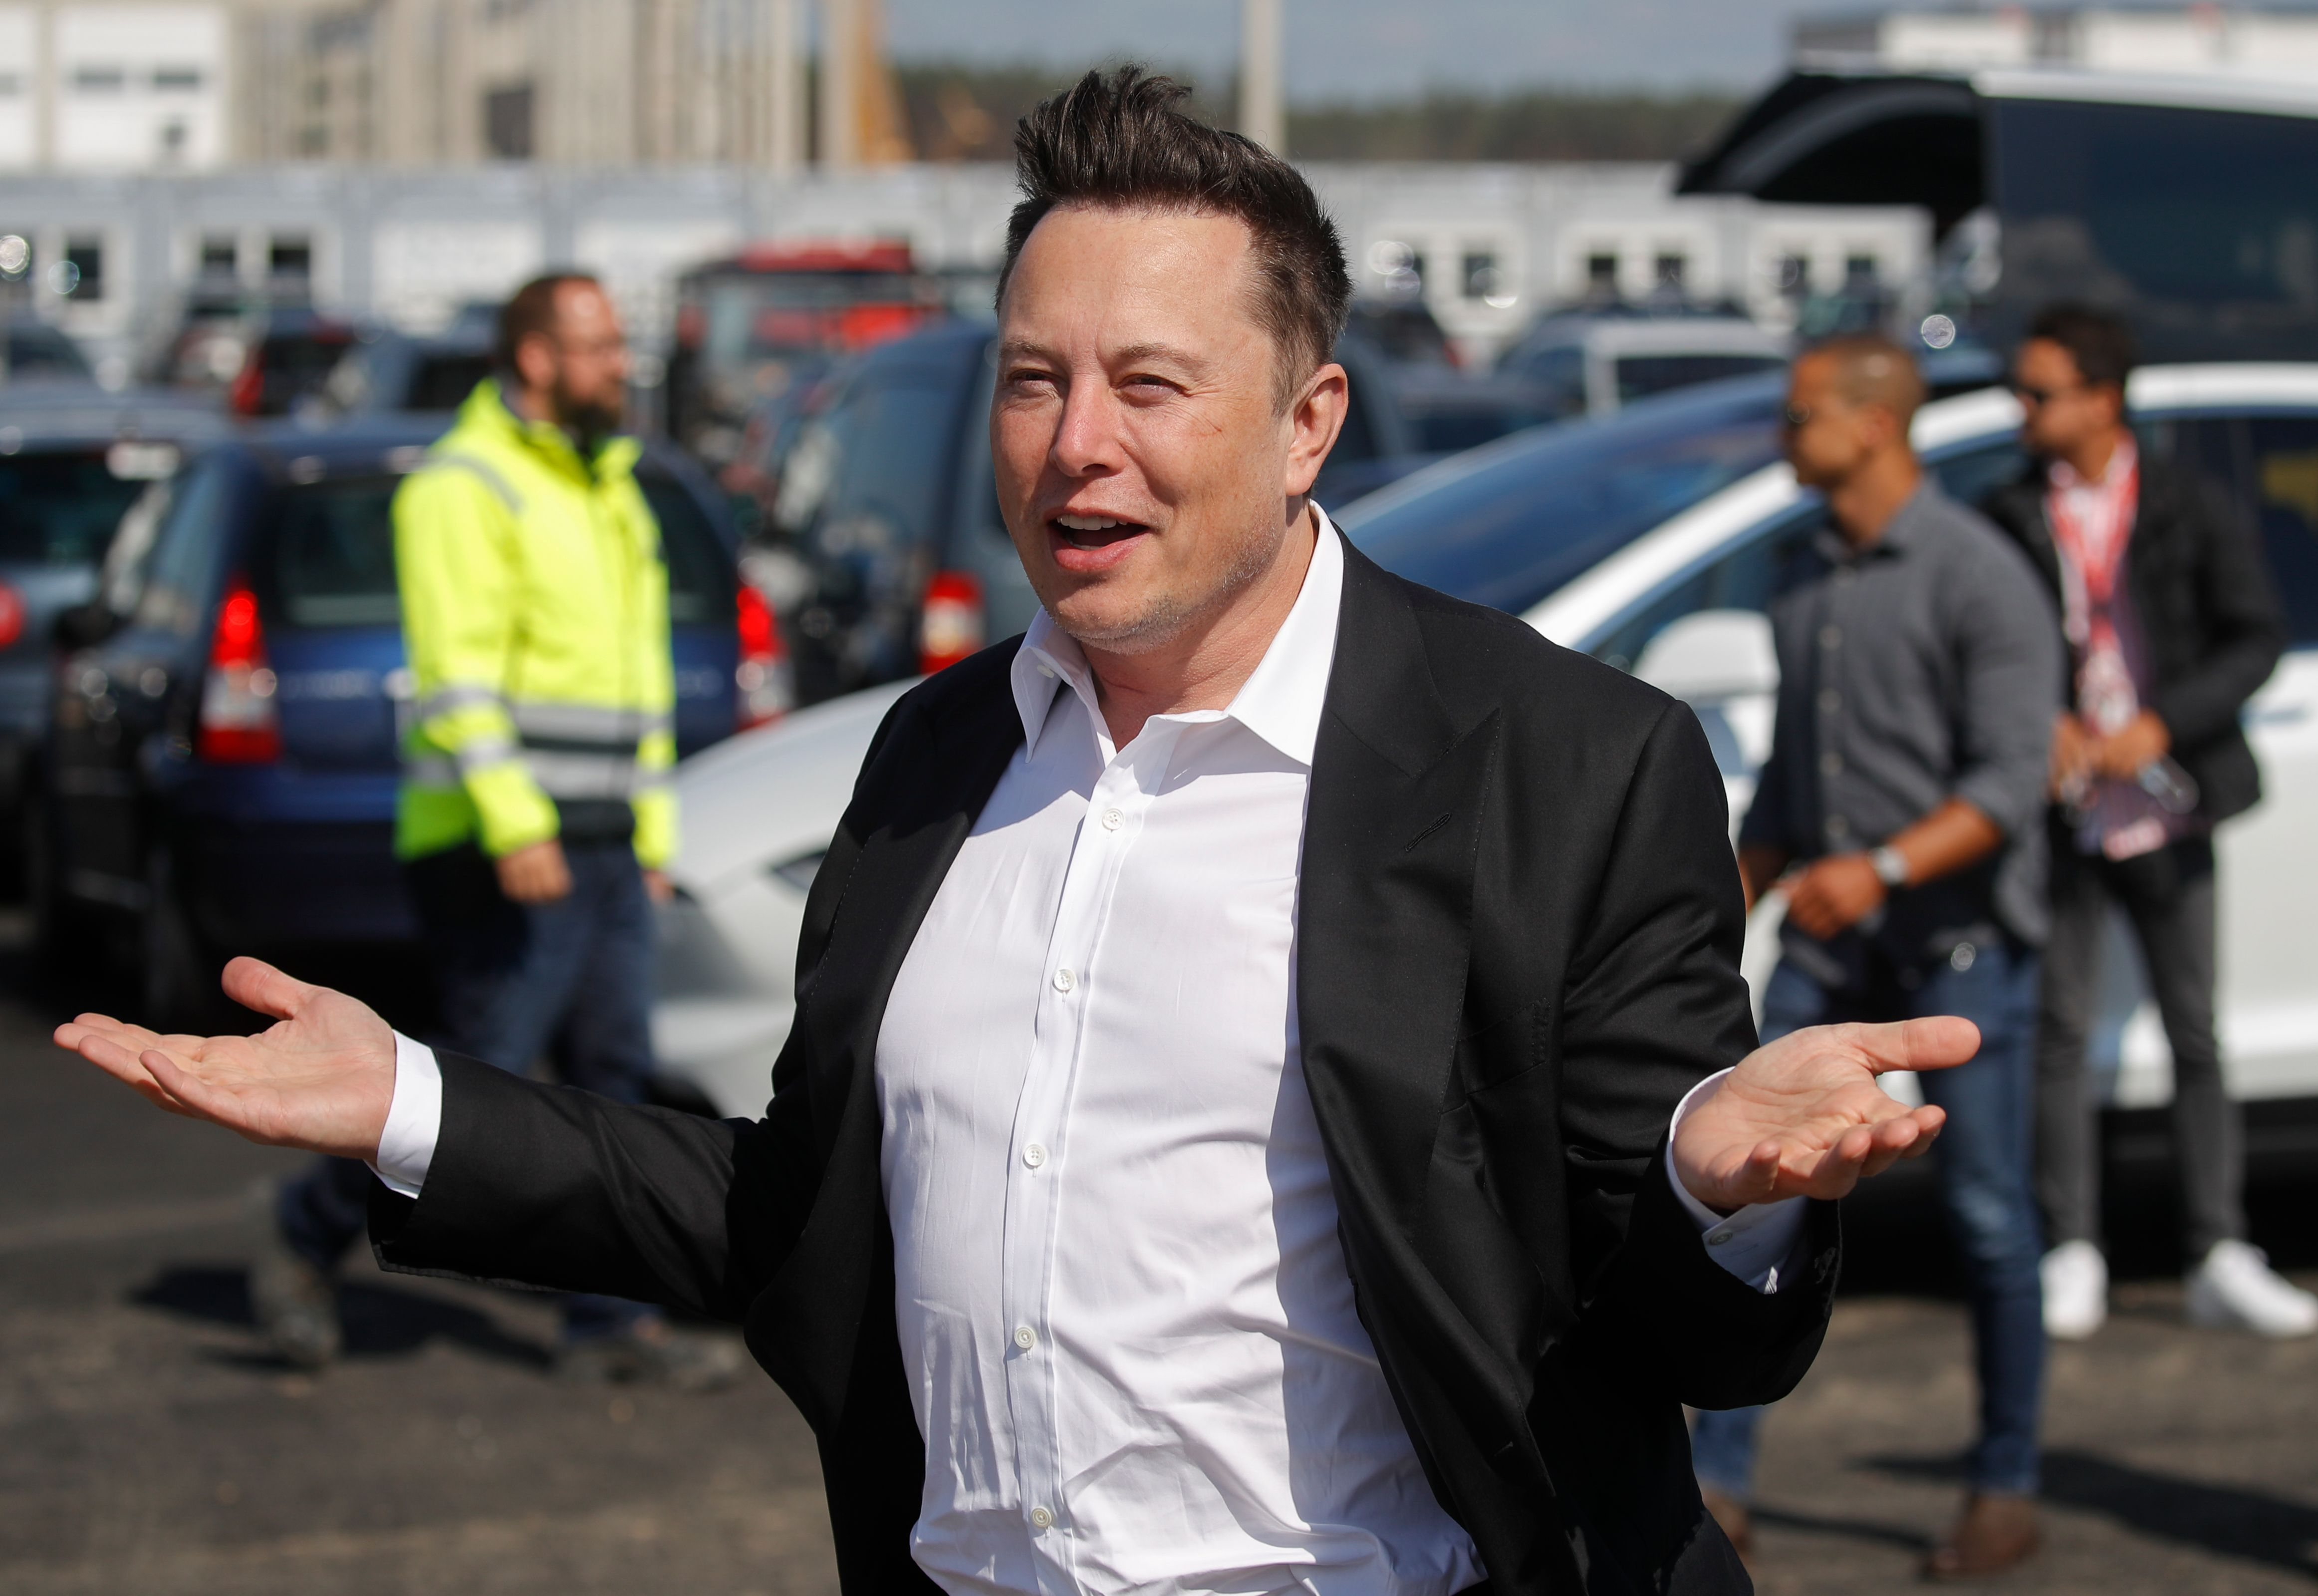 Elon Musk shrugs his arms in a photo